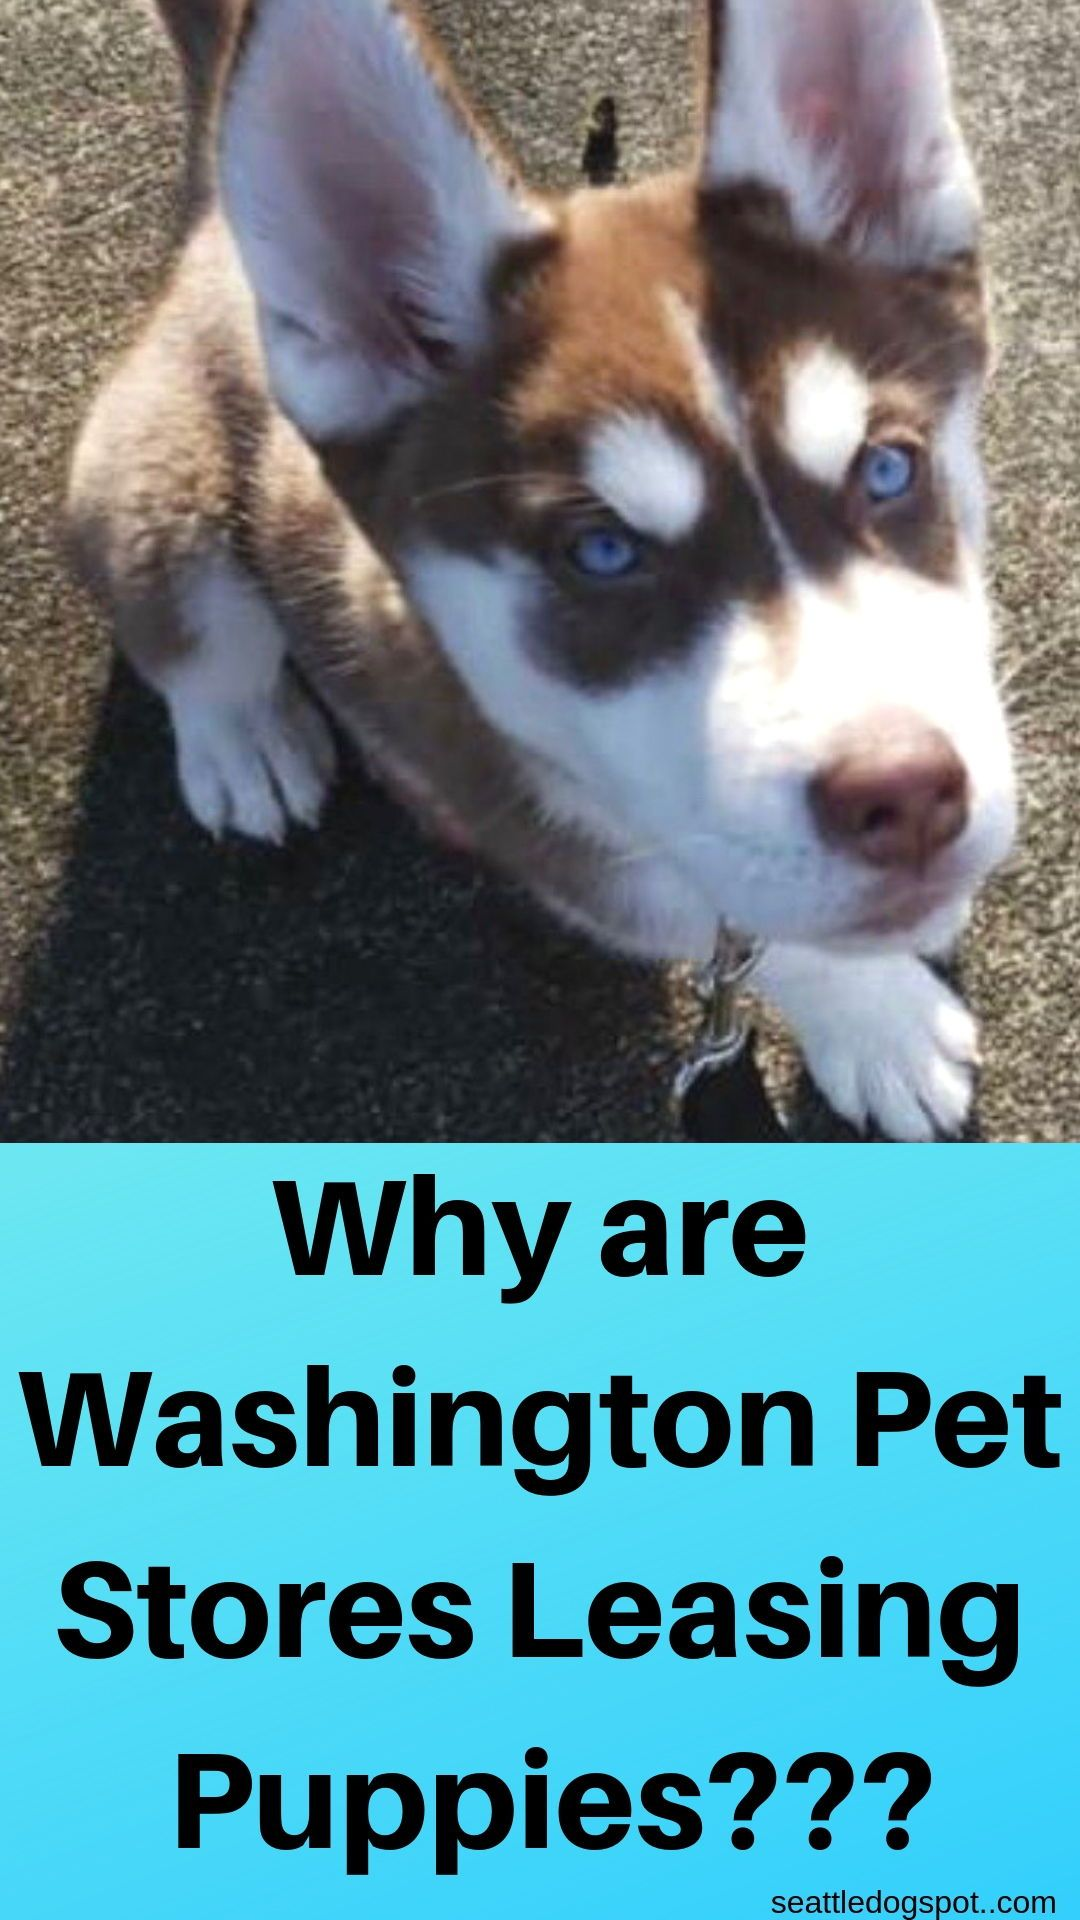 Washington Pet Stores Are Leasing Puppies Pet store